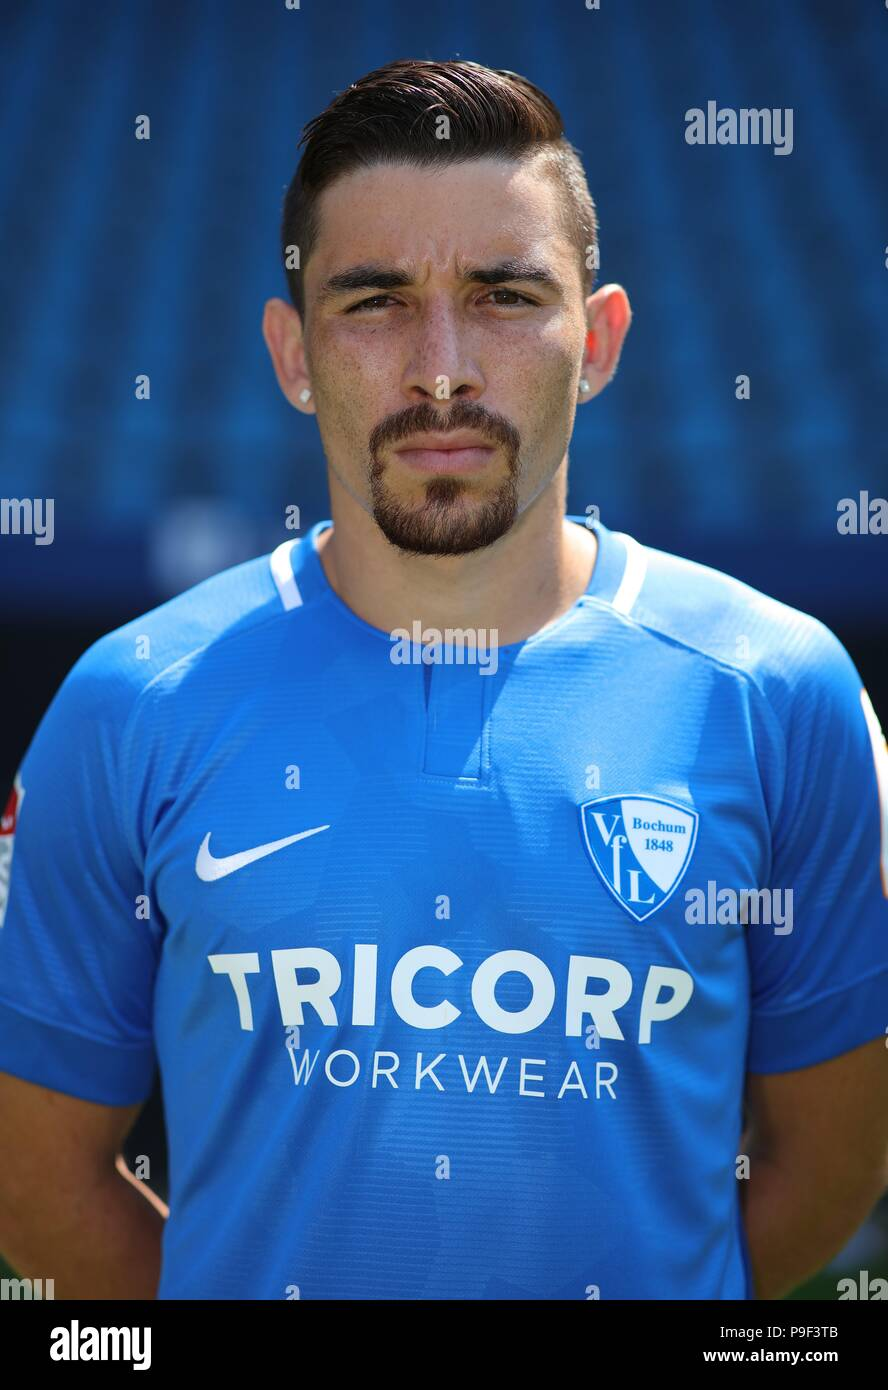 firo: 17.07.2018, football, 2.Bundesliga, season 2018/2019, VfL Bochum, photo shoot, portraits, portrait, Danilo SOARES, | usage worldwide - Stock Image